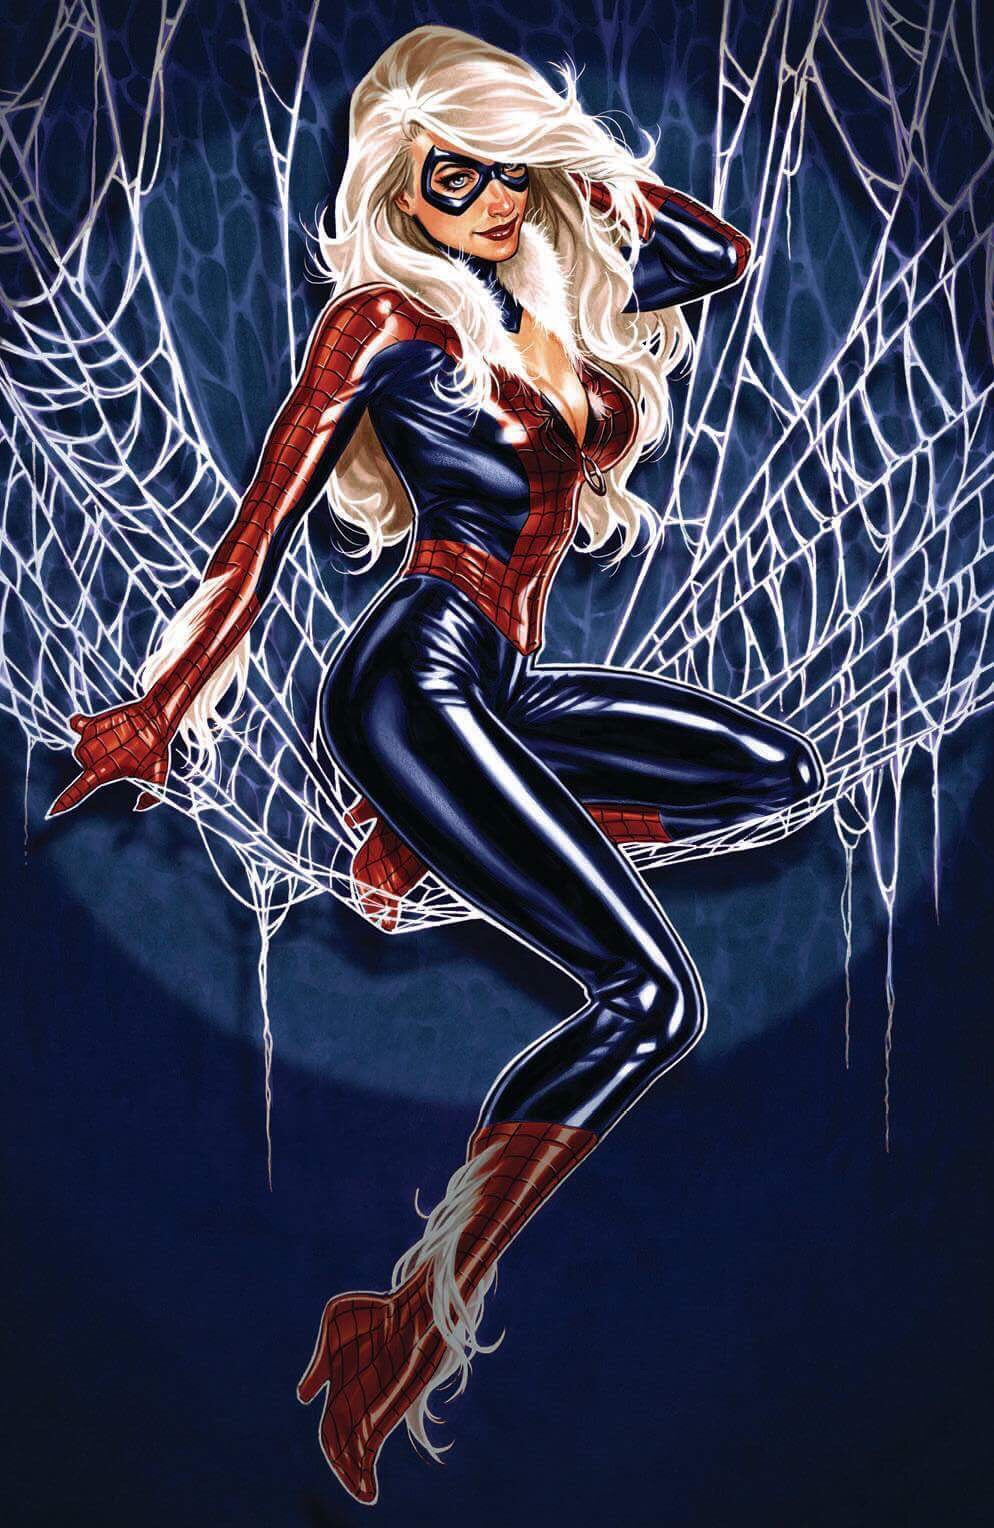 AMAZING SPIDER-MAN #1 (2018) MARK BROOKS VARIANT COVER B